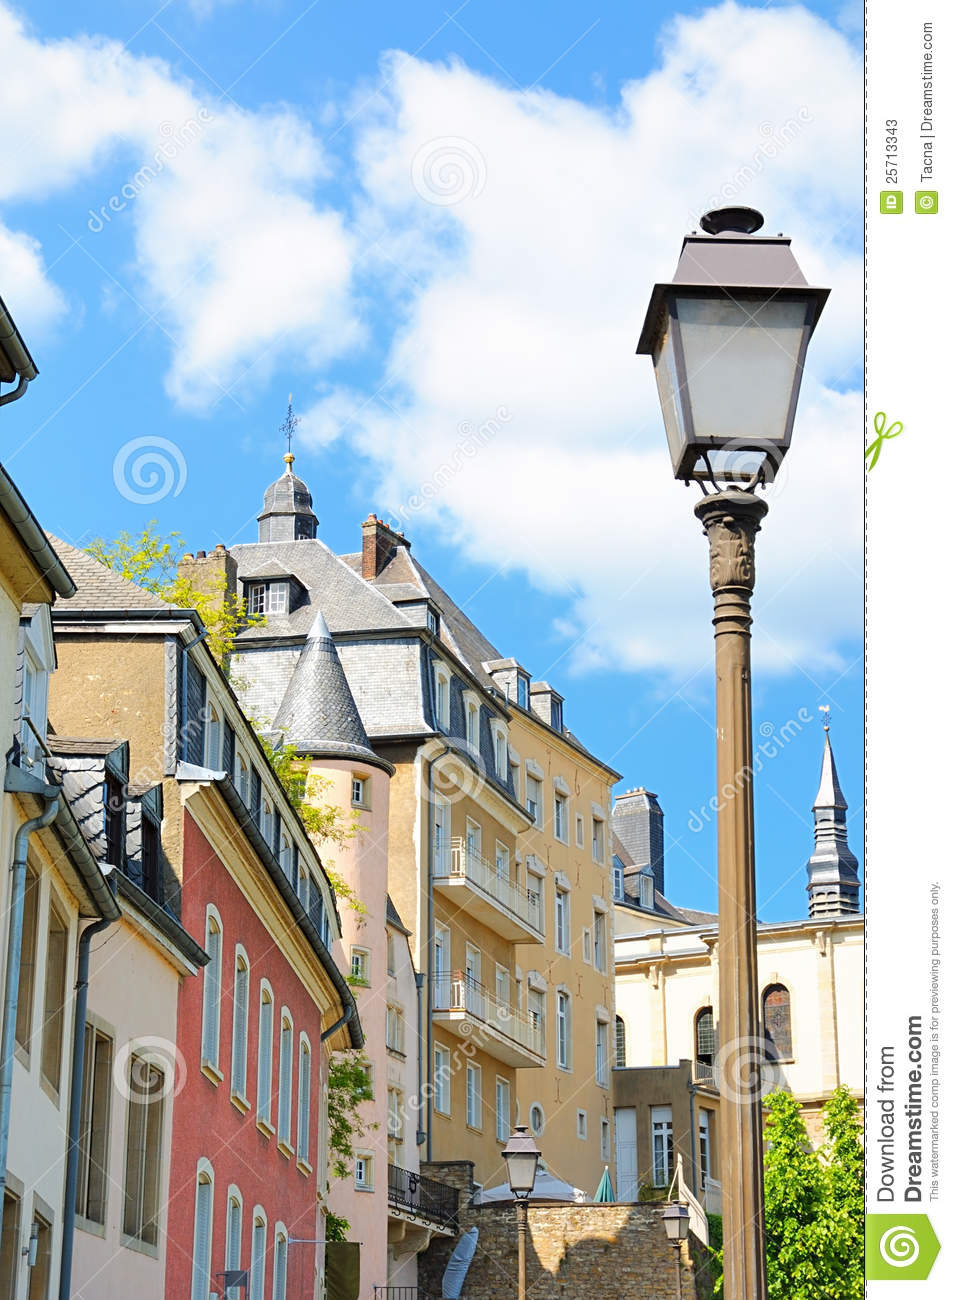 Architecture Of Luxembourg Stock Photos - Image: 25713343